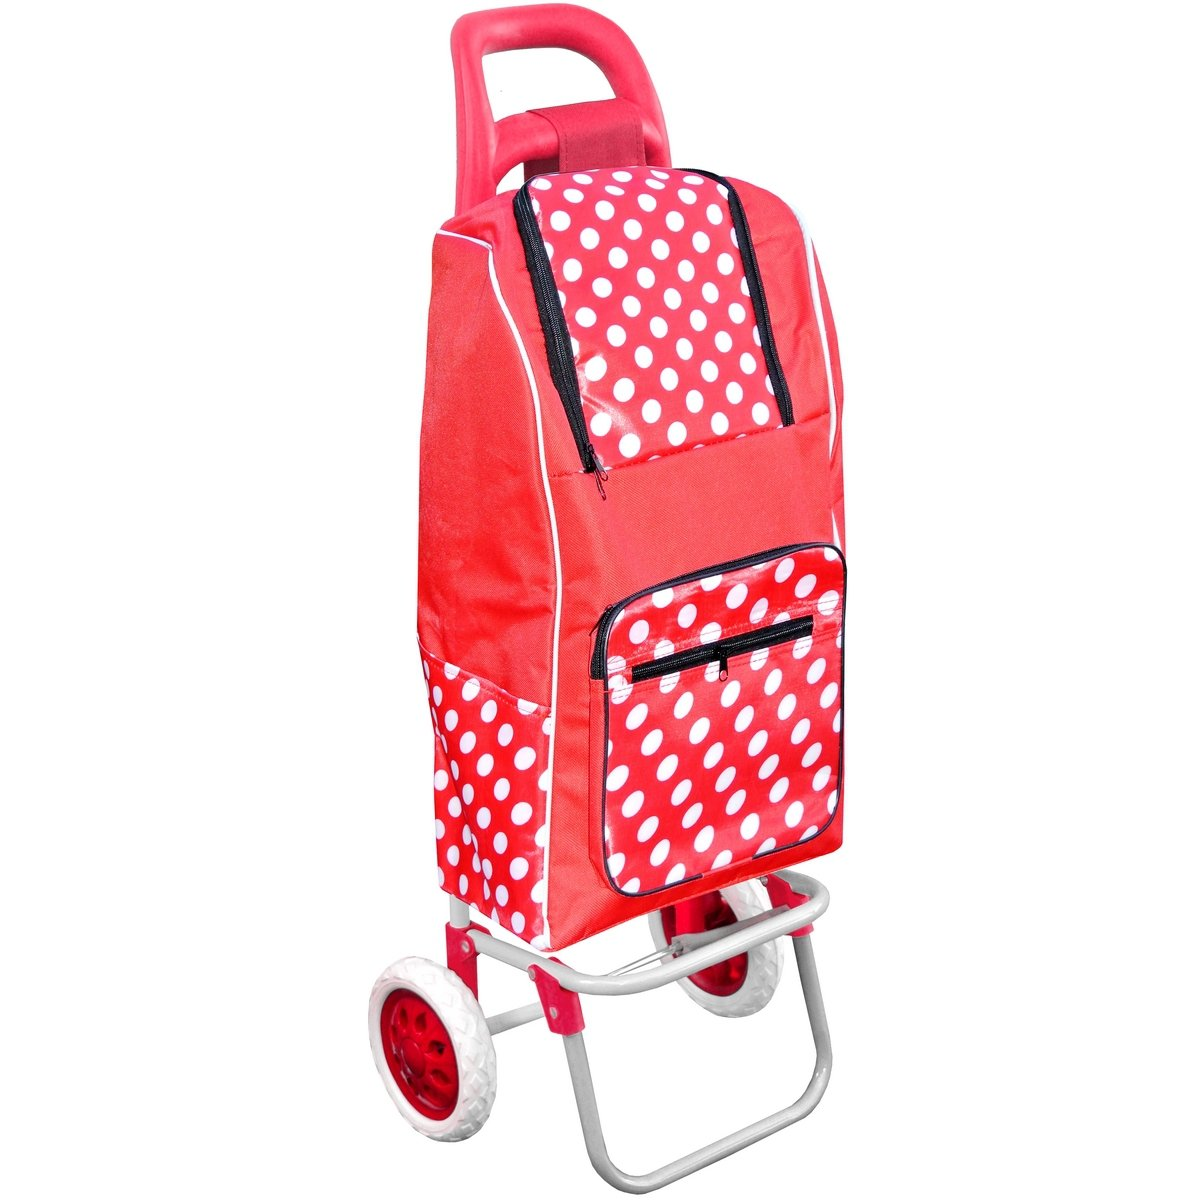 Promobo Chariot De Courses Shopping A Roulettes Isotherme A Pois Rouge 30L chariotisothermfmxroug